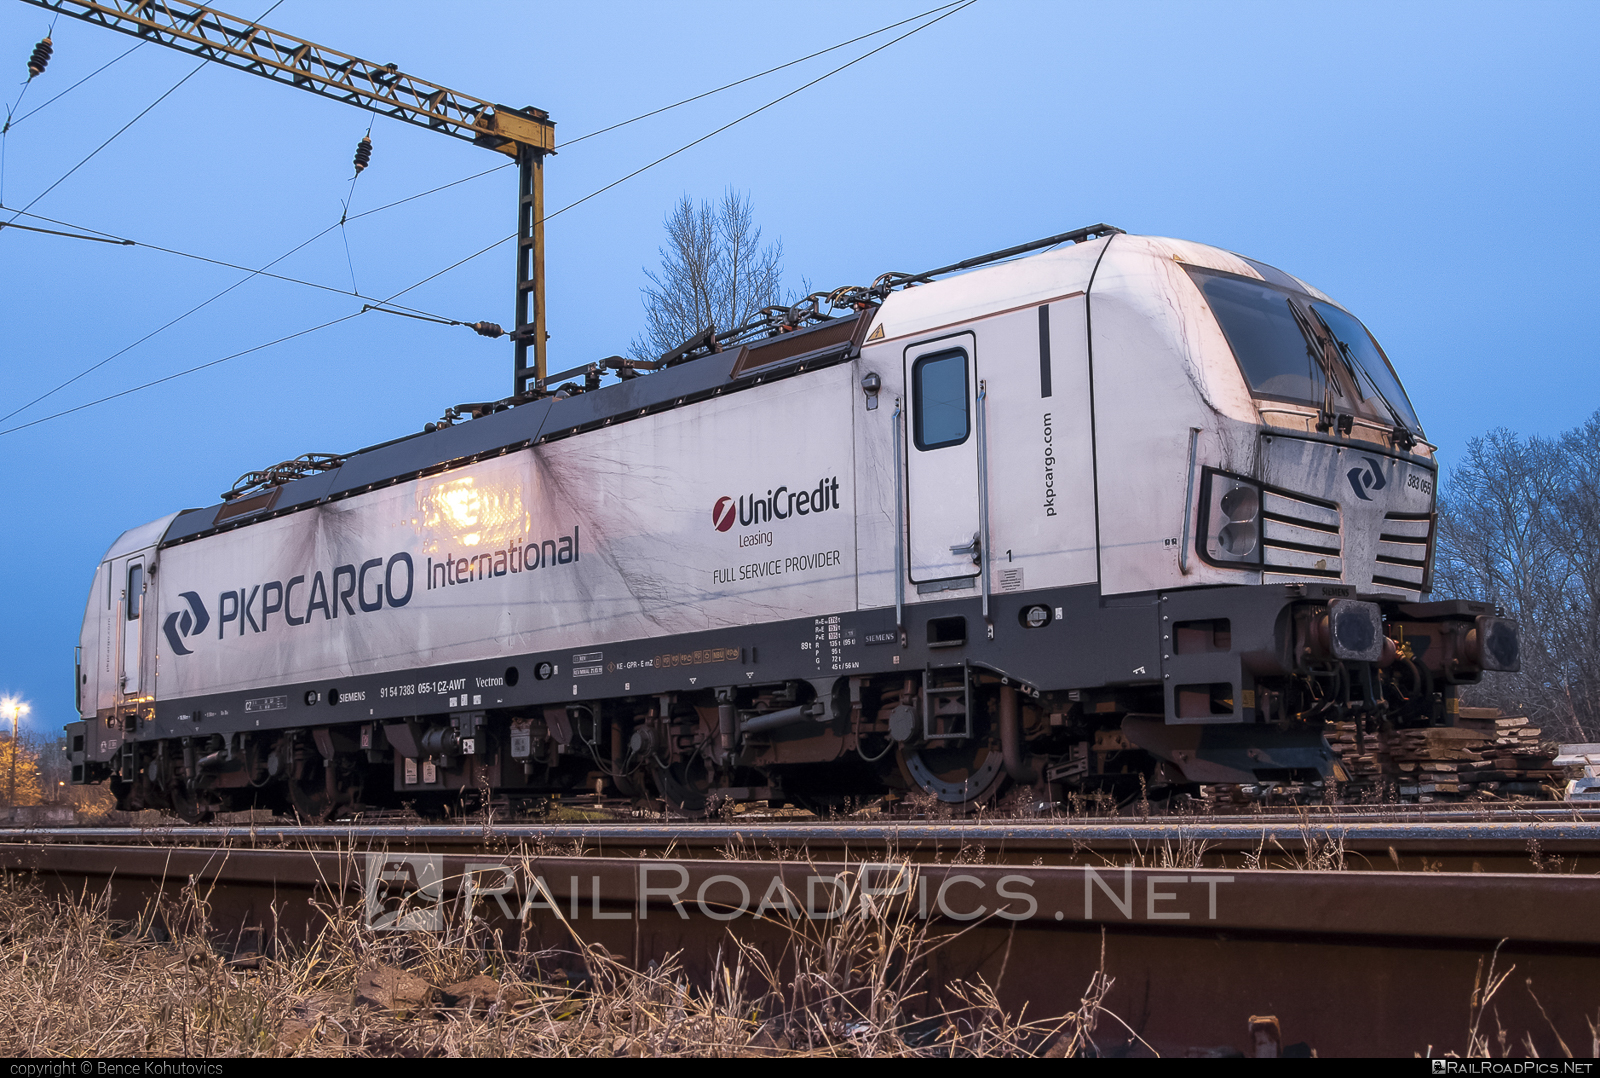 Siemens Vectron MS - 383 055 operated by PKP CARGO INTERNATIONAL a.s. #pkpcargo #pkpcargointernational #pkpcargointernationalas #siemens #siemensvectron #siemensvectronms #vectron #vectronms